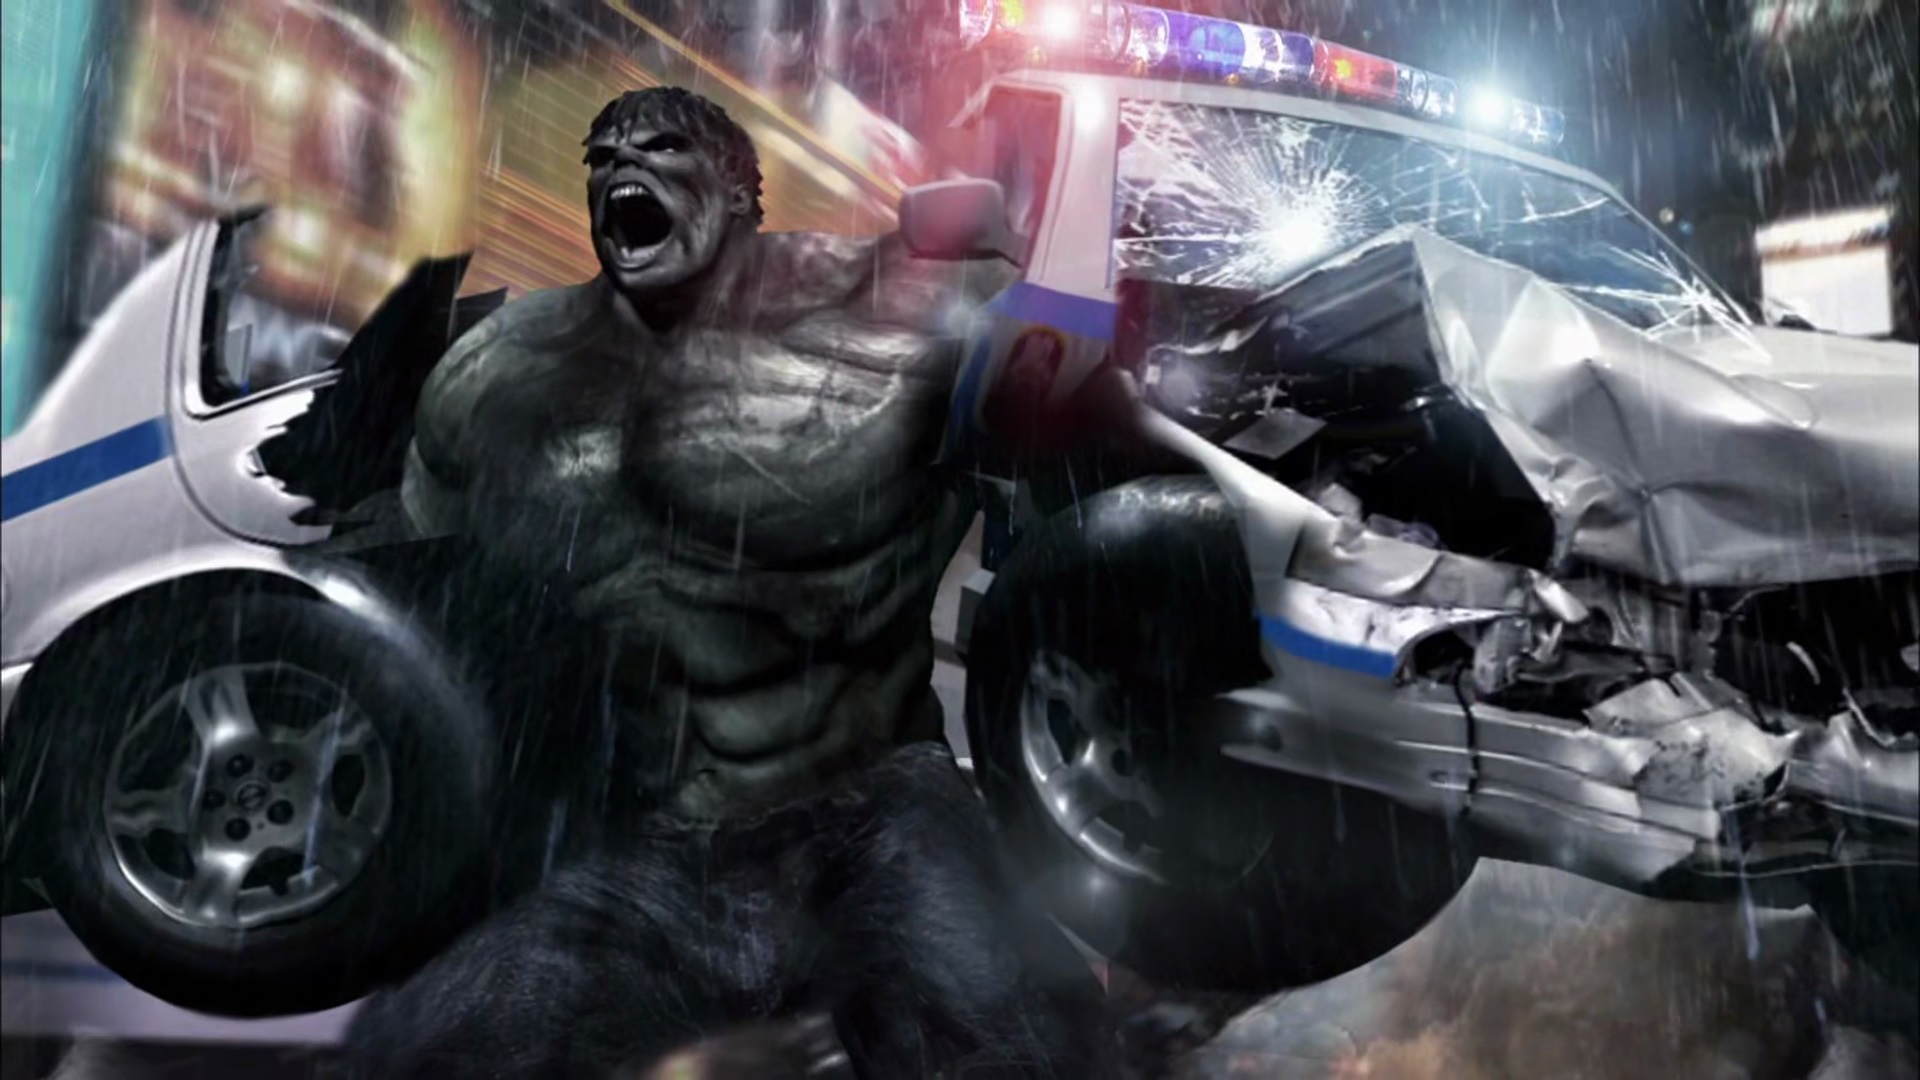 File:Hulk - boxing gloves - Concept Art.jpg